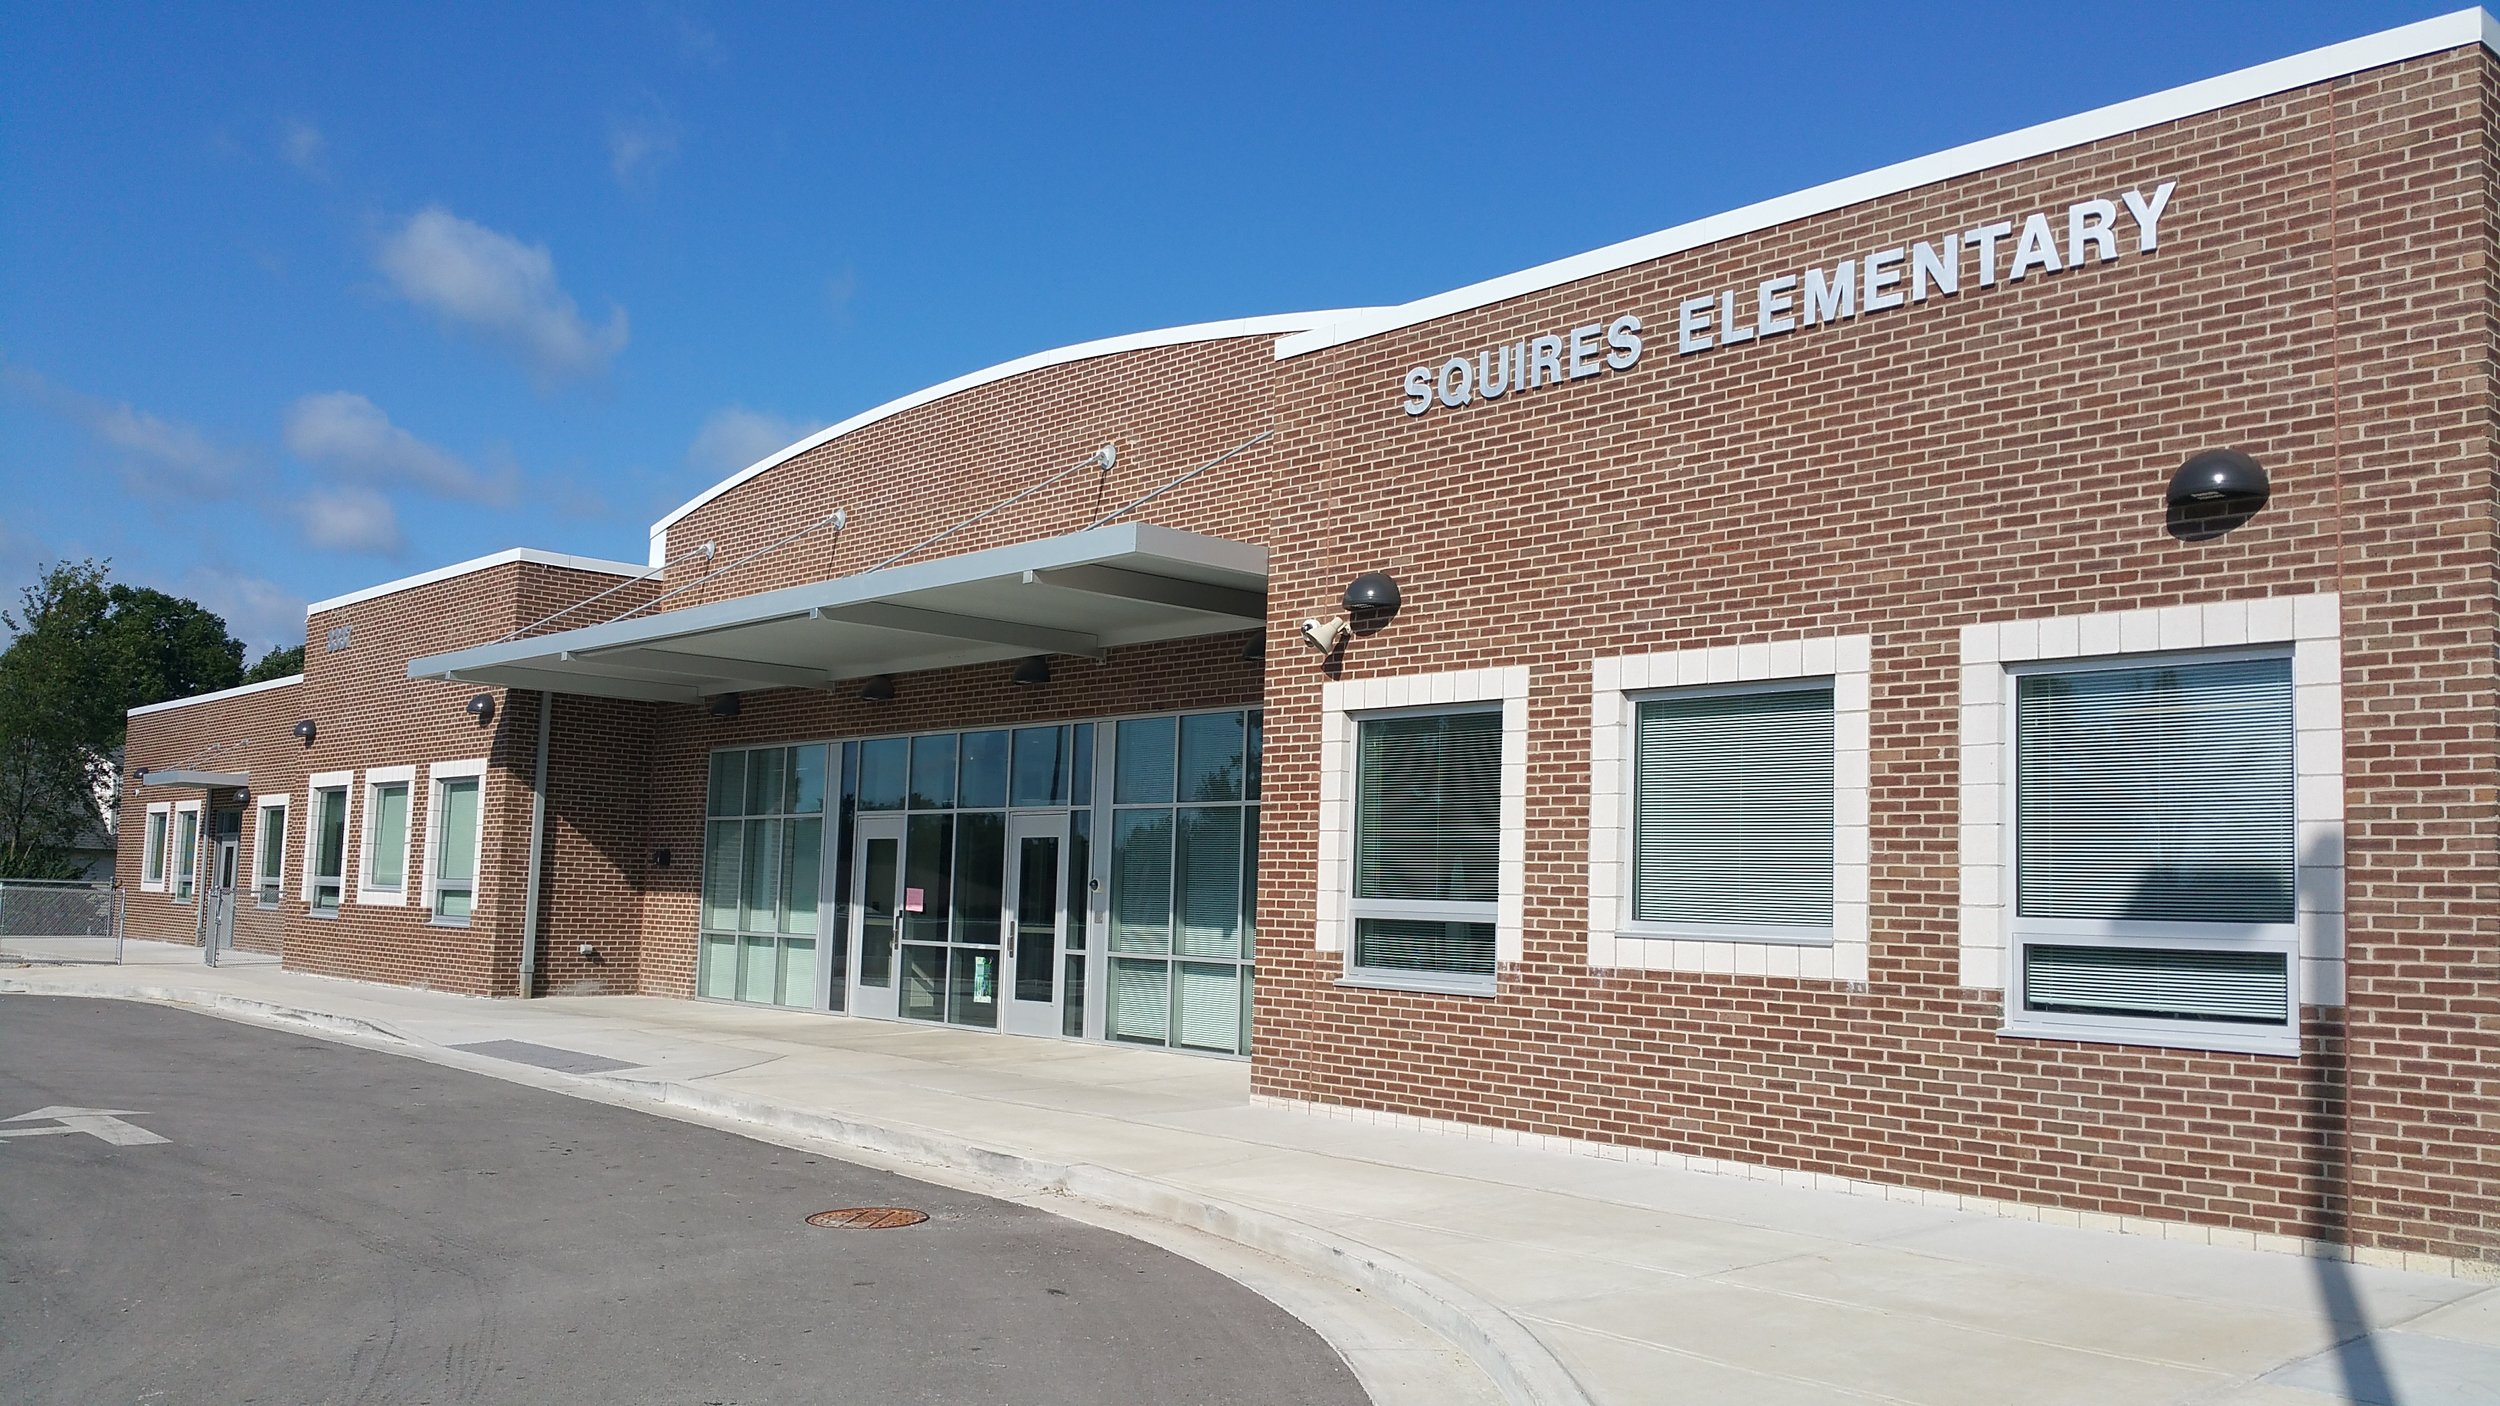 Squires Elementary